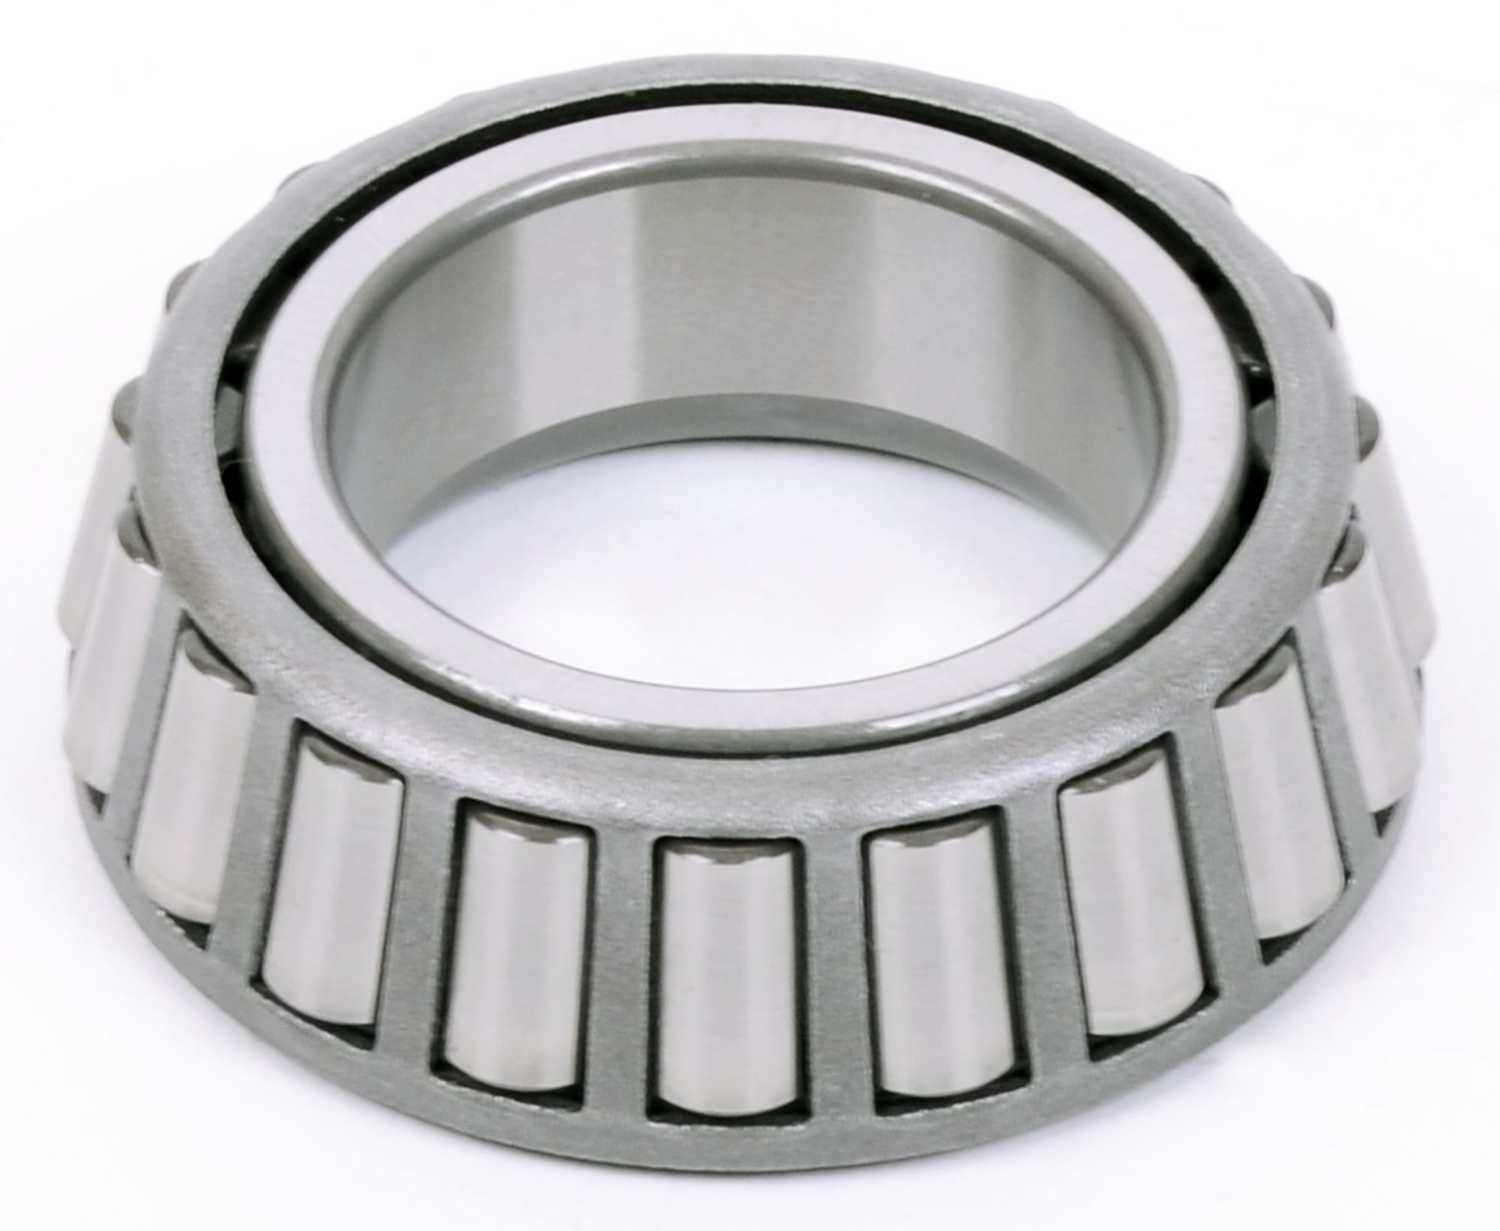 SKF (CHICAGO RAWHIDE) - Axle Differential Bearing - SKF LM48548 VP